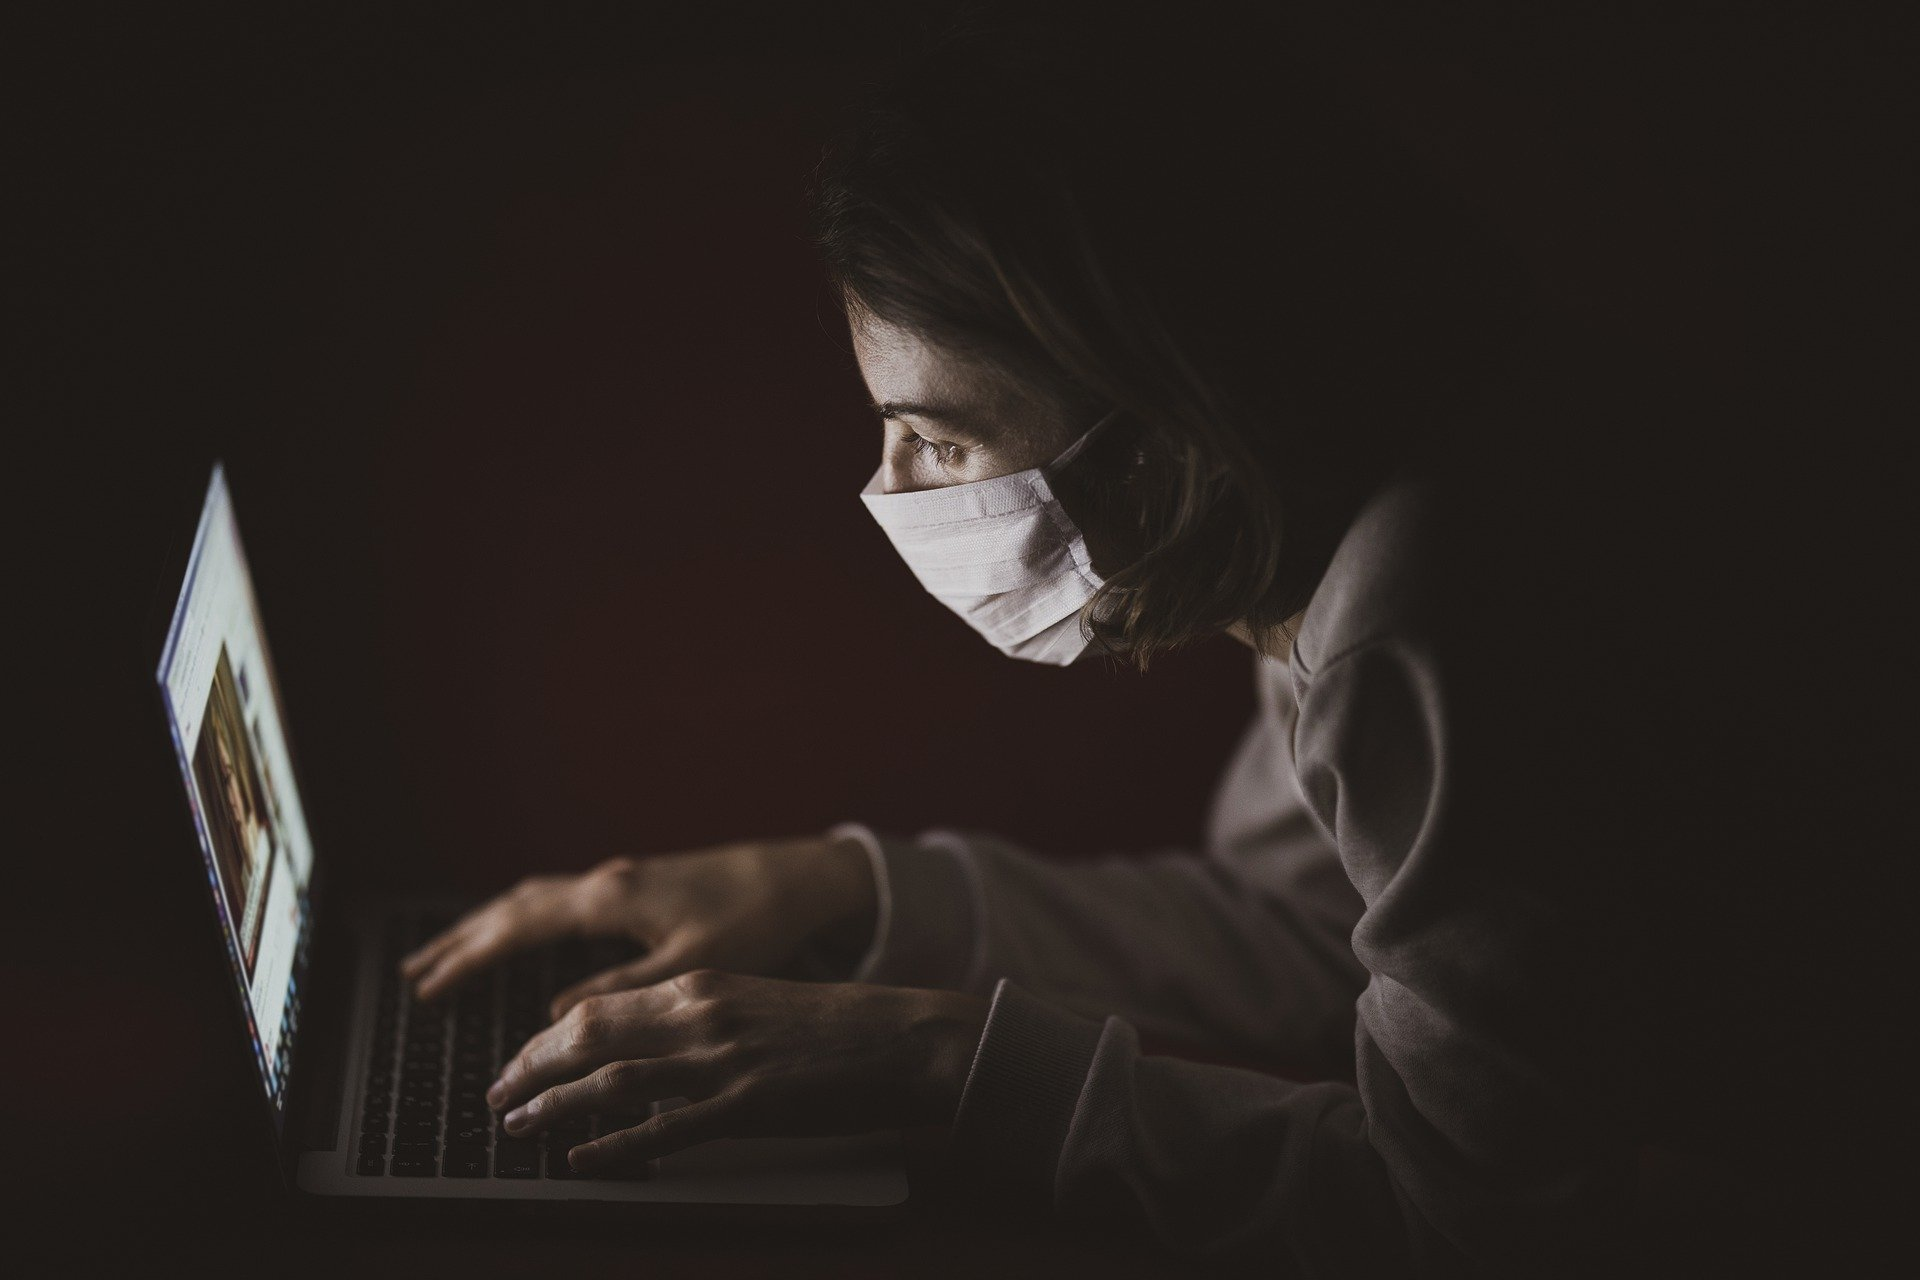 masked person in the dark on a computer